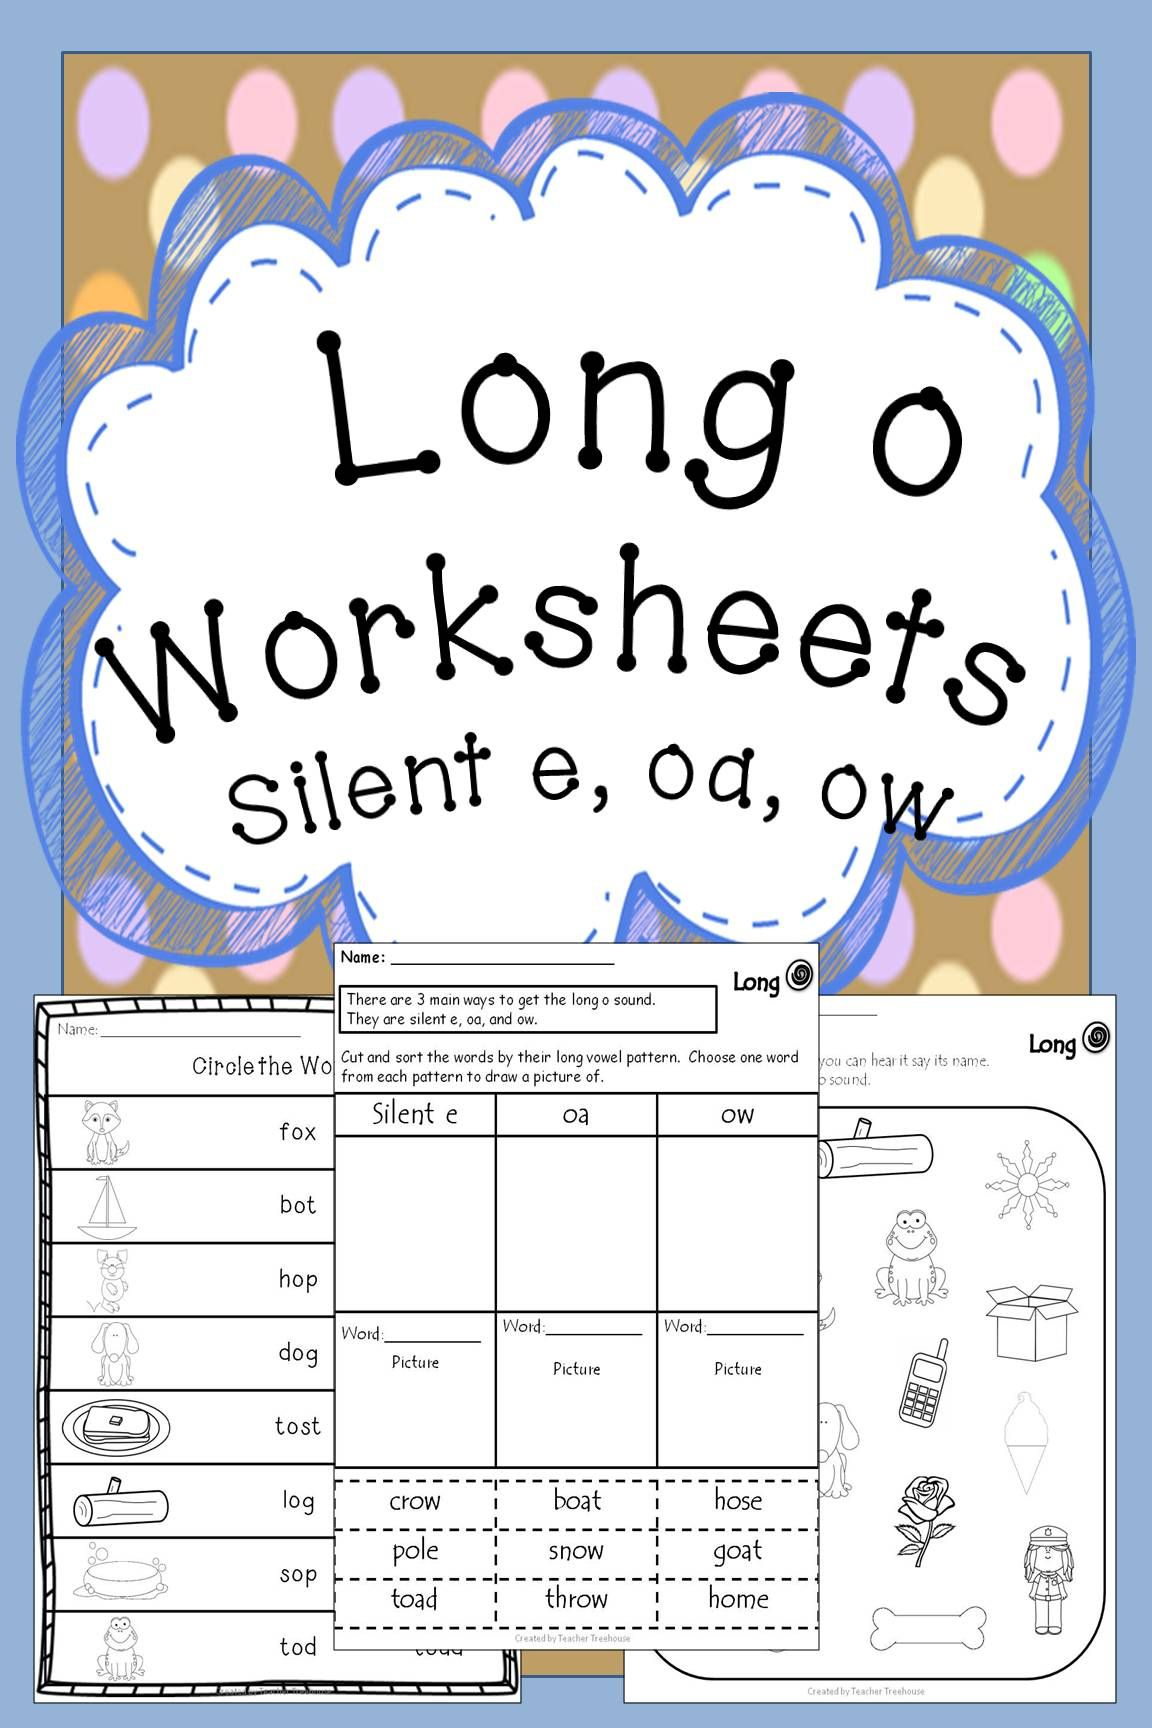 long o worksheets spelling patterns worksheets and language arts. Black Bedroom Furniture Sets. Home Design Ideas